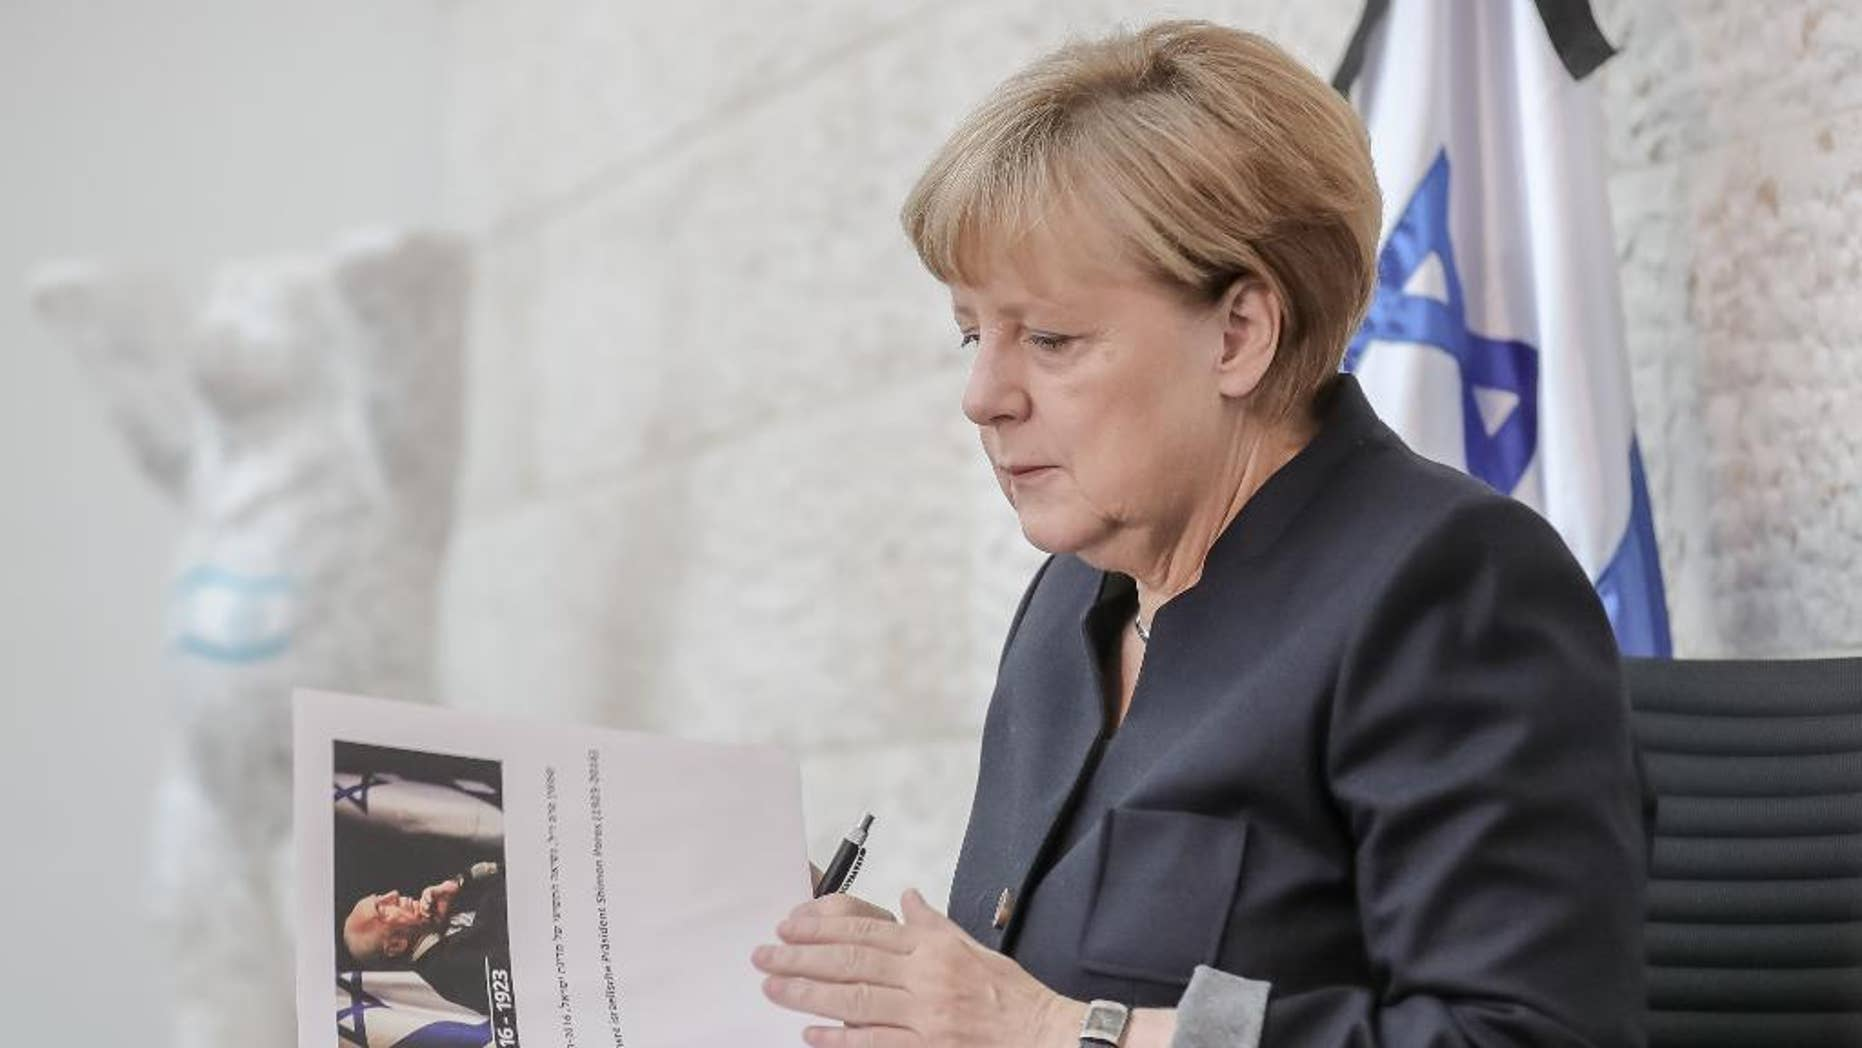 German Chancellor Angela Merkel prepares to sign the book of condolence for former Israeli President Shimon Peres at the embassy of Israel in Berlin, Germany, Friday, Sept. 30, 2016. (Michael Kappeler/Pool Photo via AP)